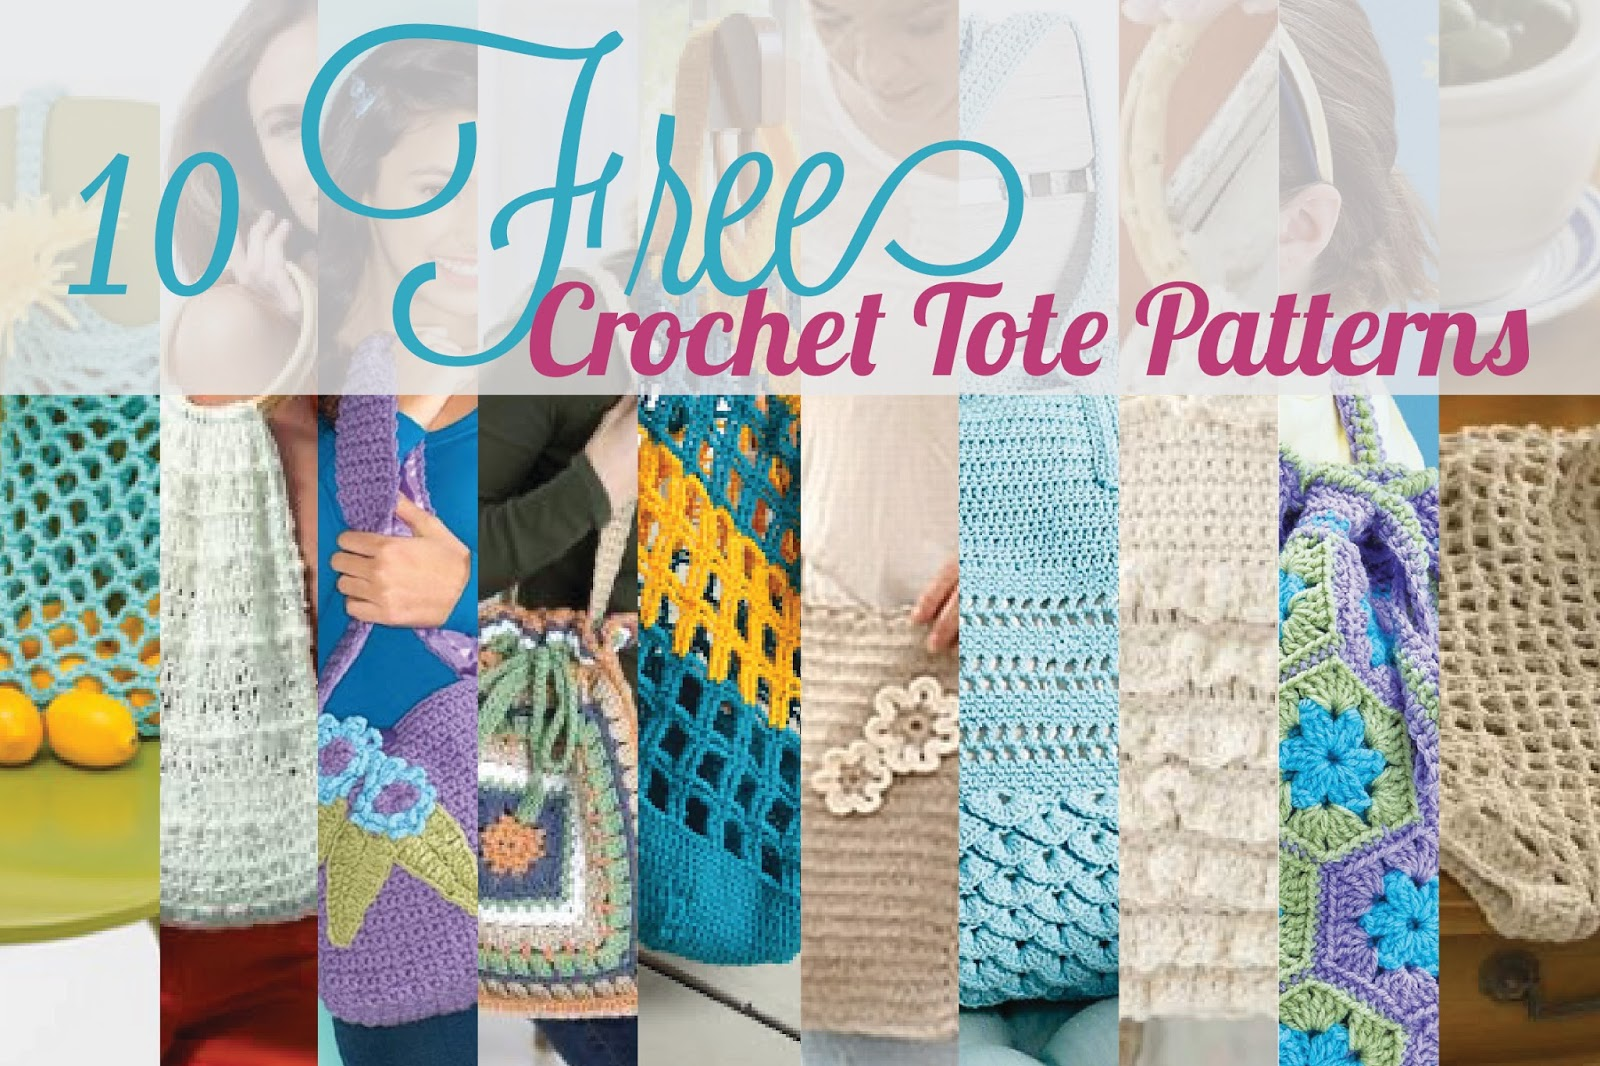 Crochet Tote Pattern Free : Cottontail Crochet: 10 Free Crochet Tote Patterns